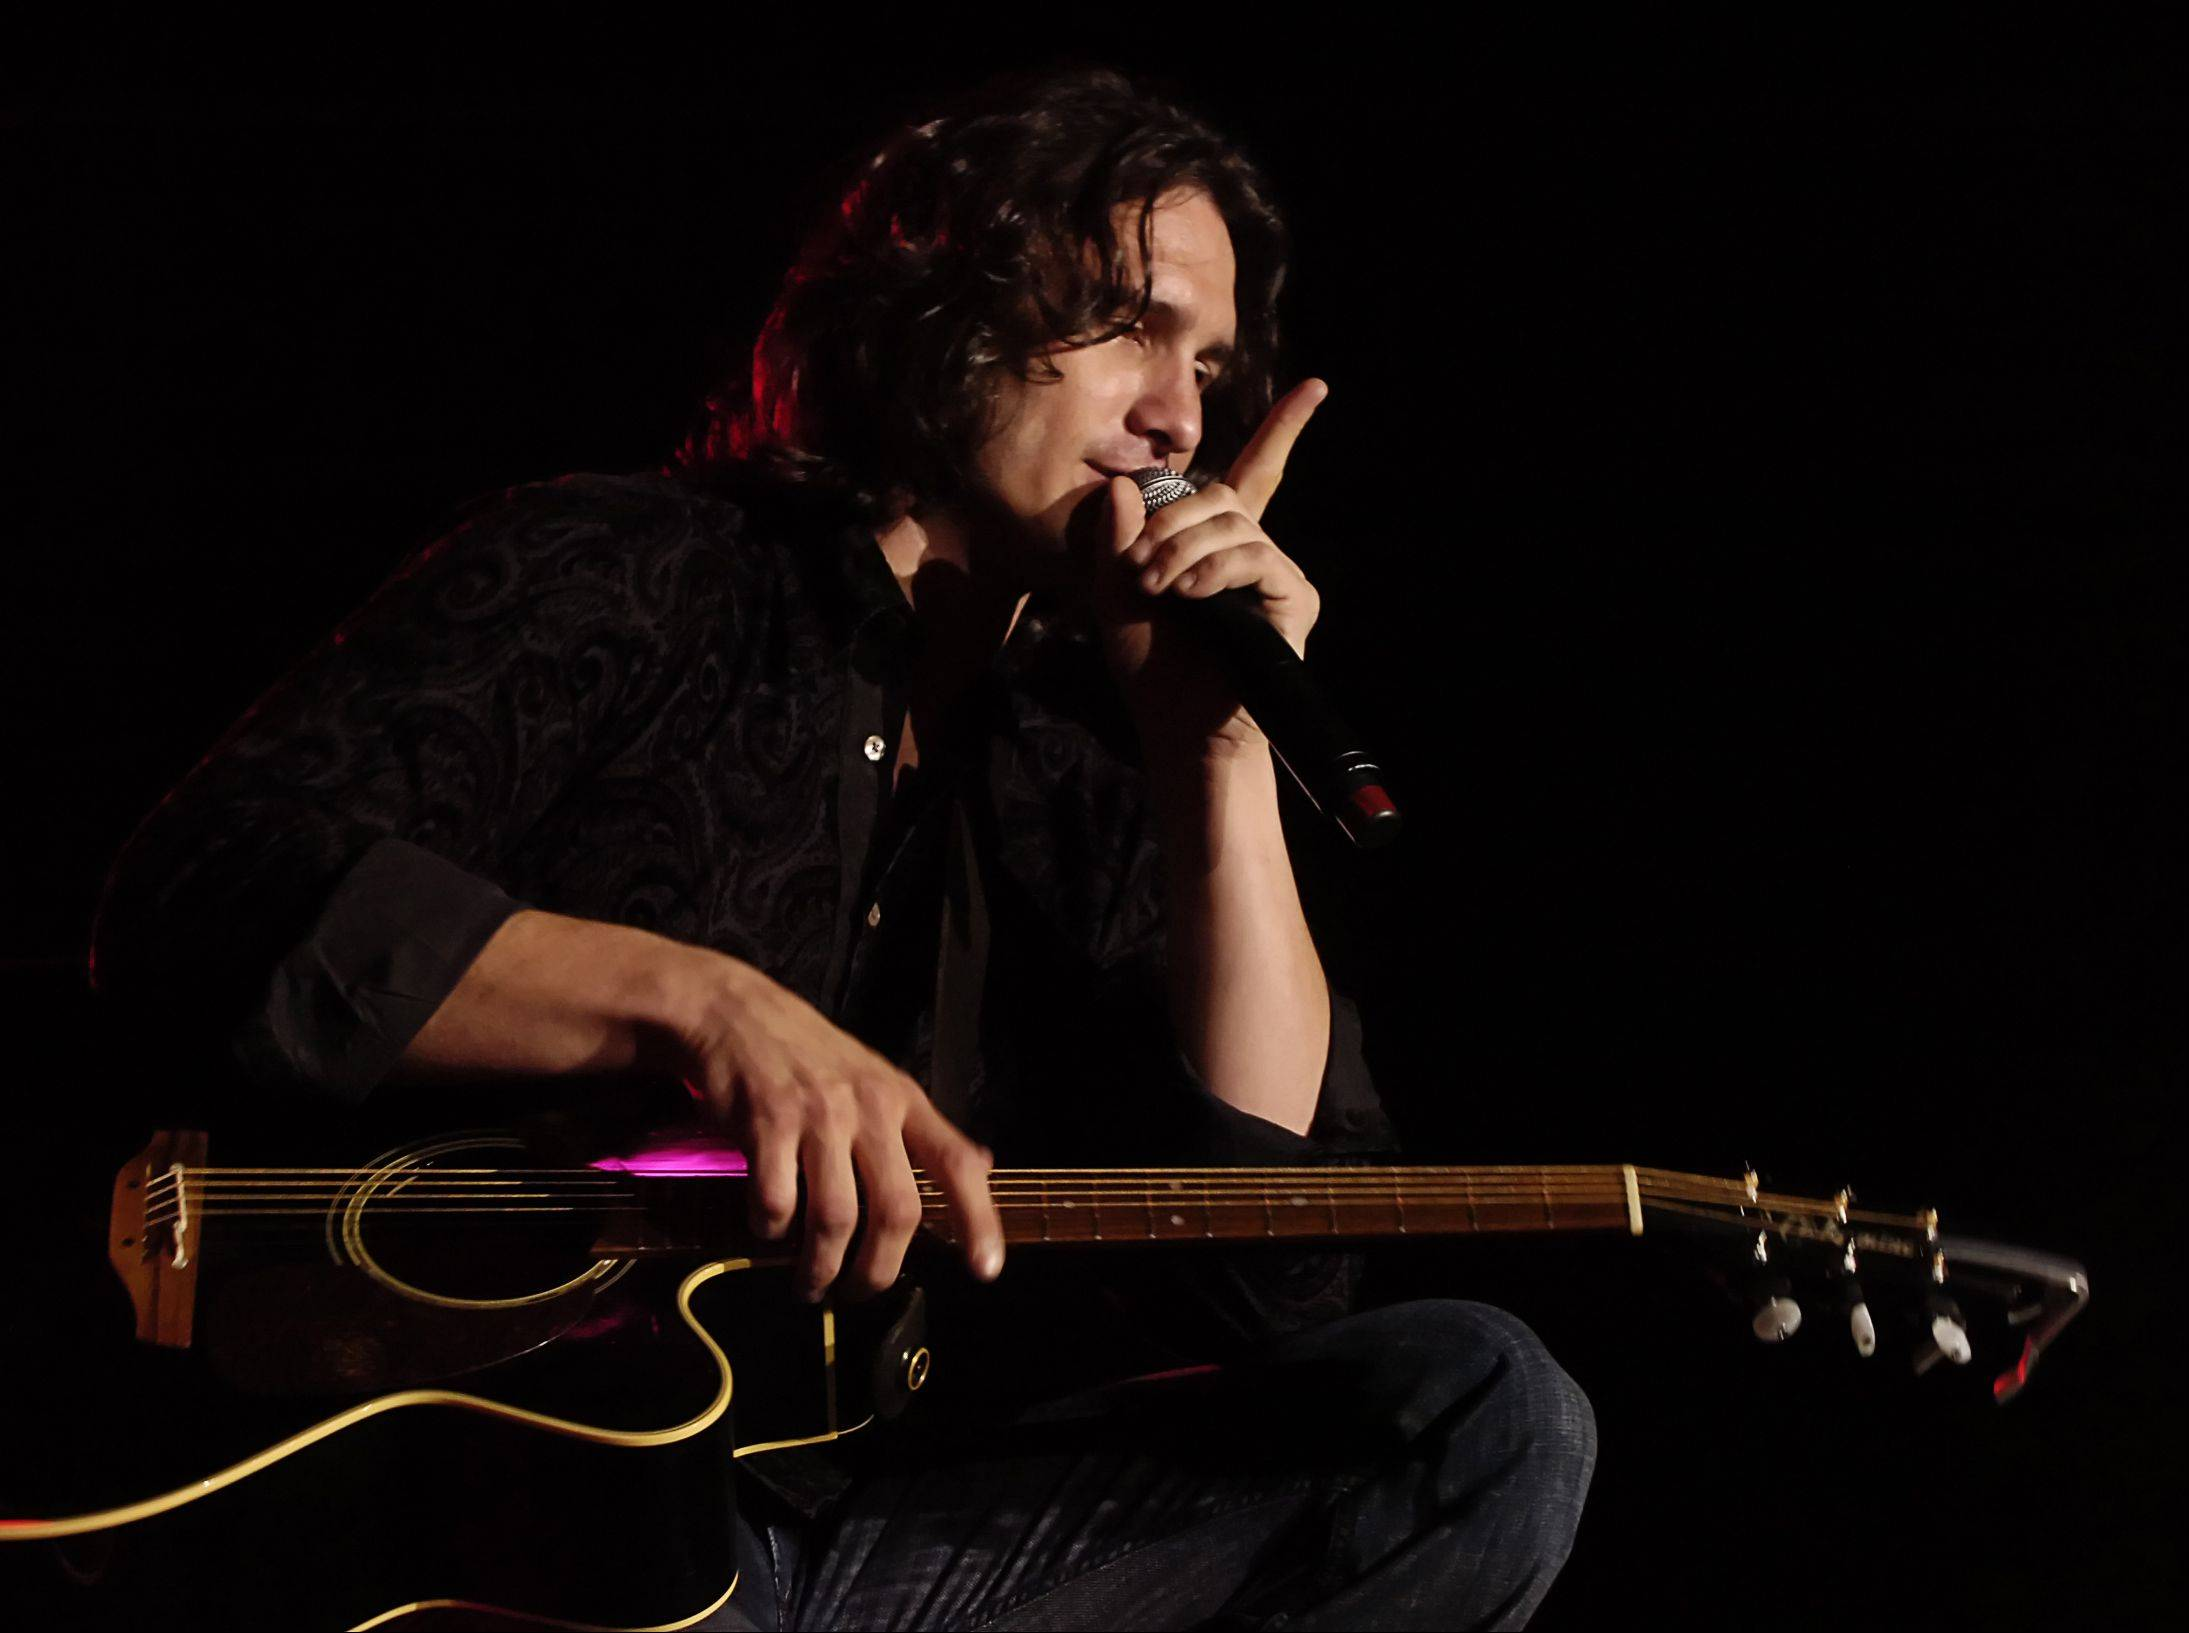 Joe Nichols headlines the main stage at Ribfest on Monday. Entertainment planners negotiate to get well-known performers, then take steps to ensure the fest's lineup will be unique in the area.